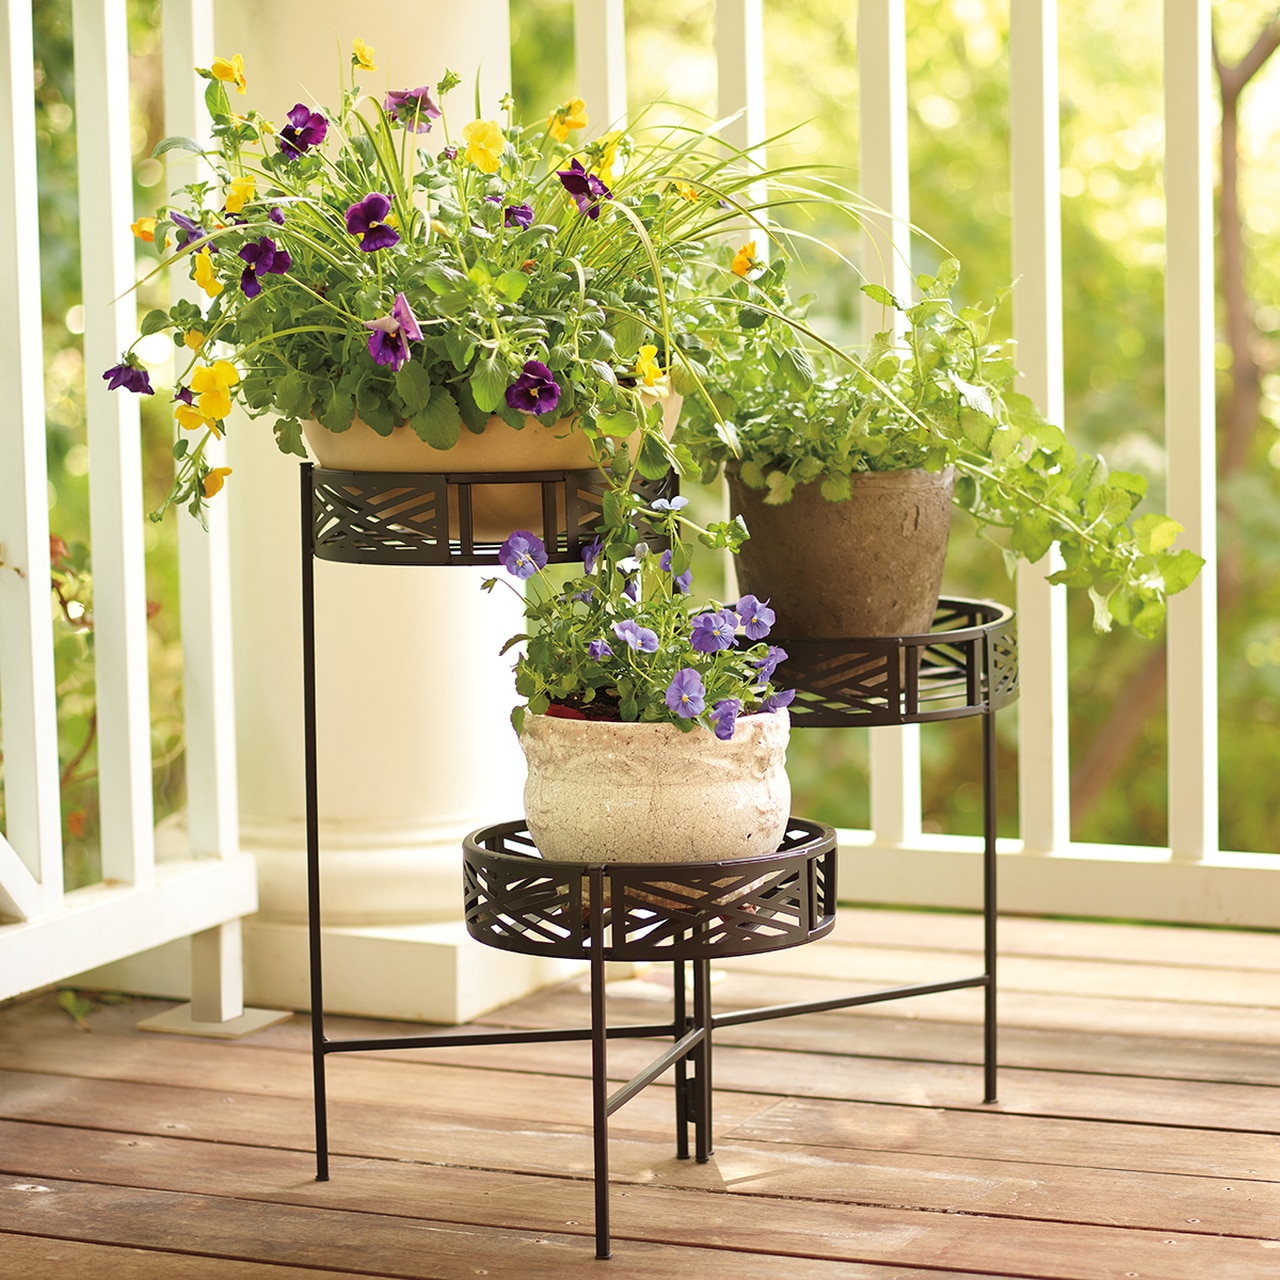 Monticello Folding Metal Plant Stand